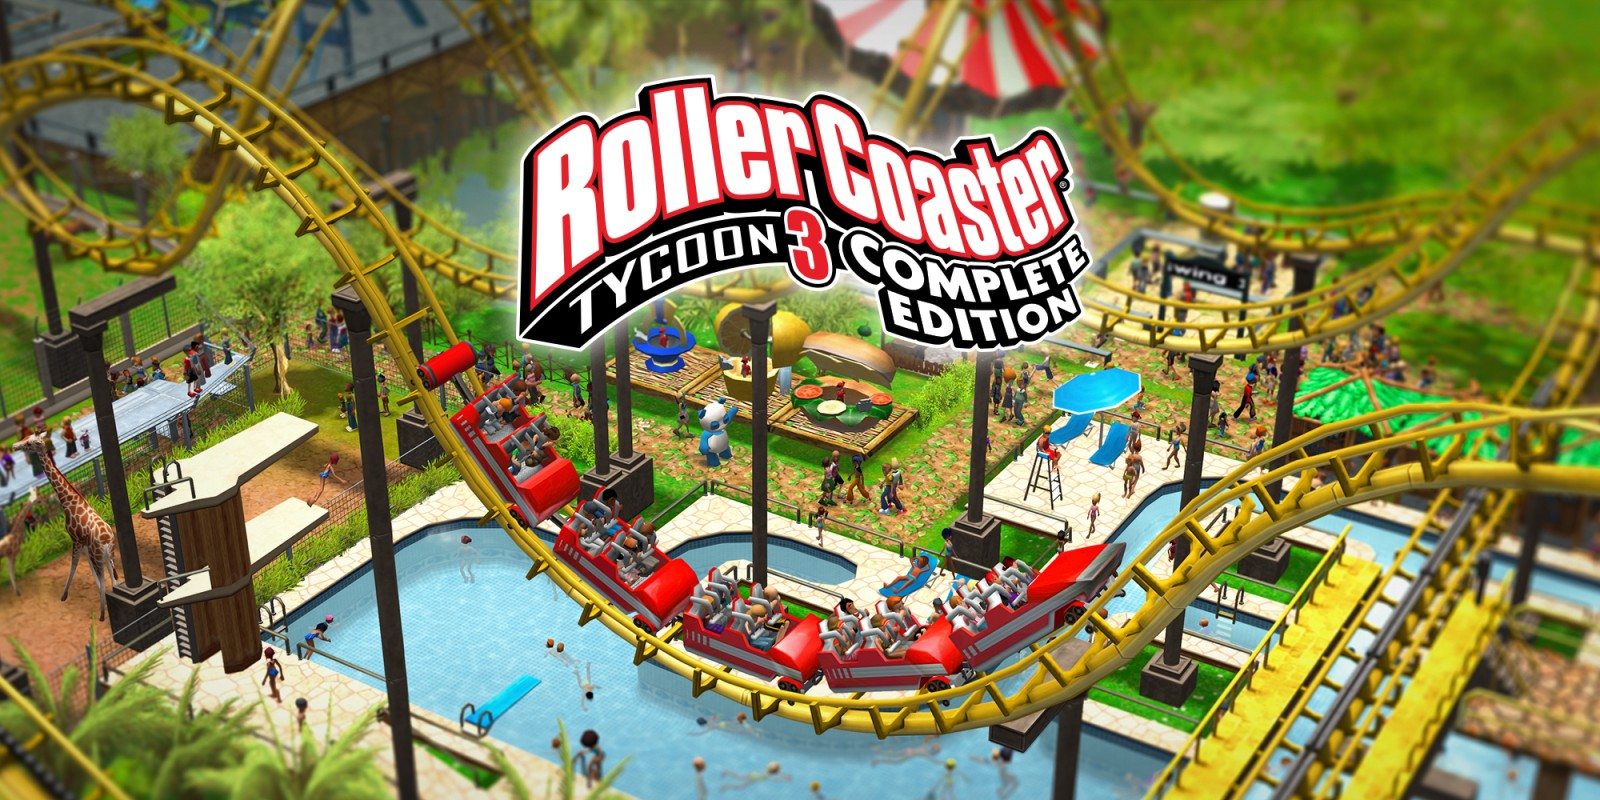 H2x1_NSwitchDS_RollercoasterTycoon3CompleteEdition_image1600w.jpg